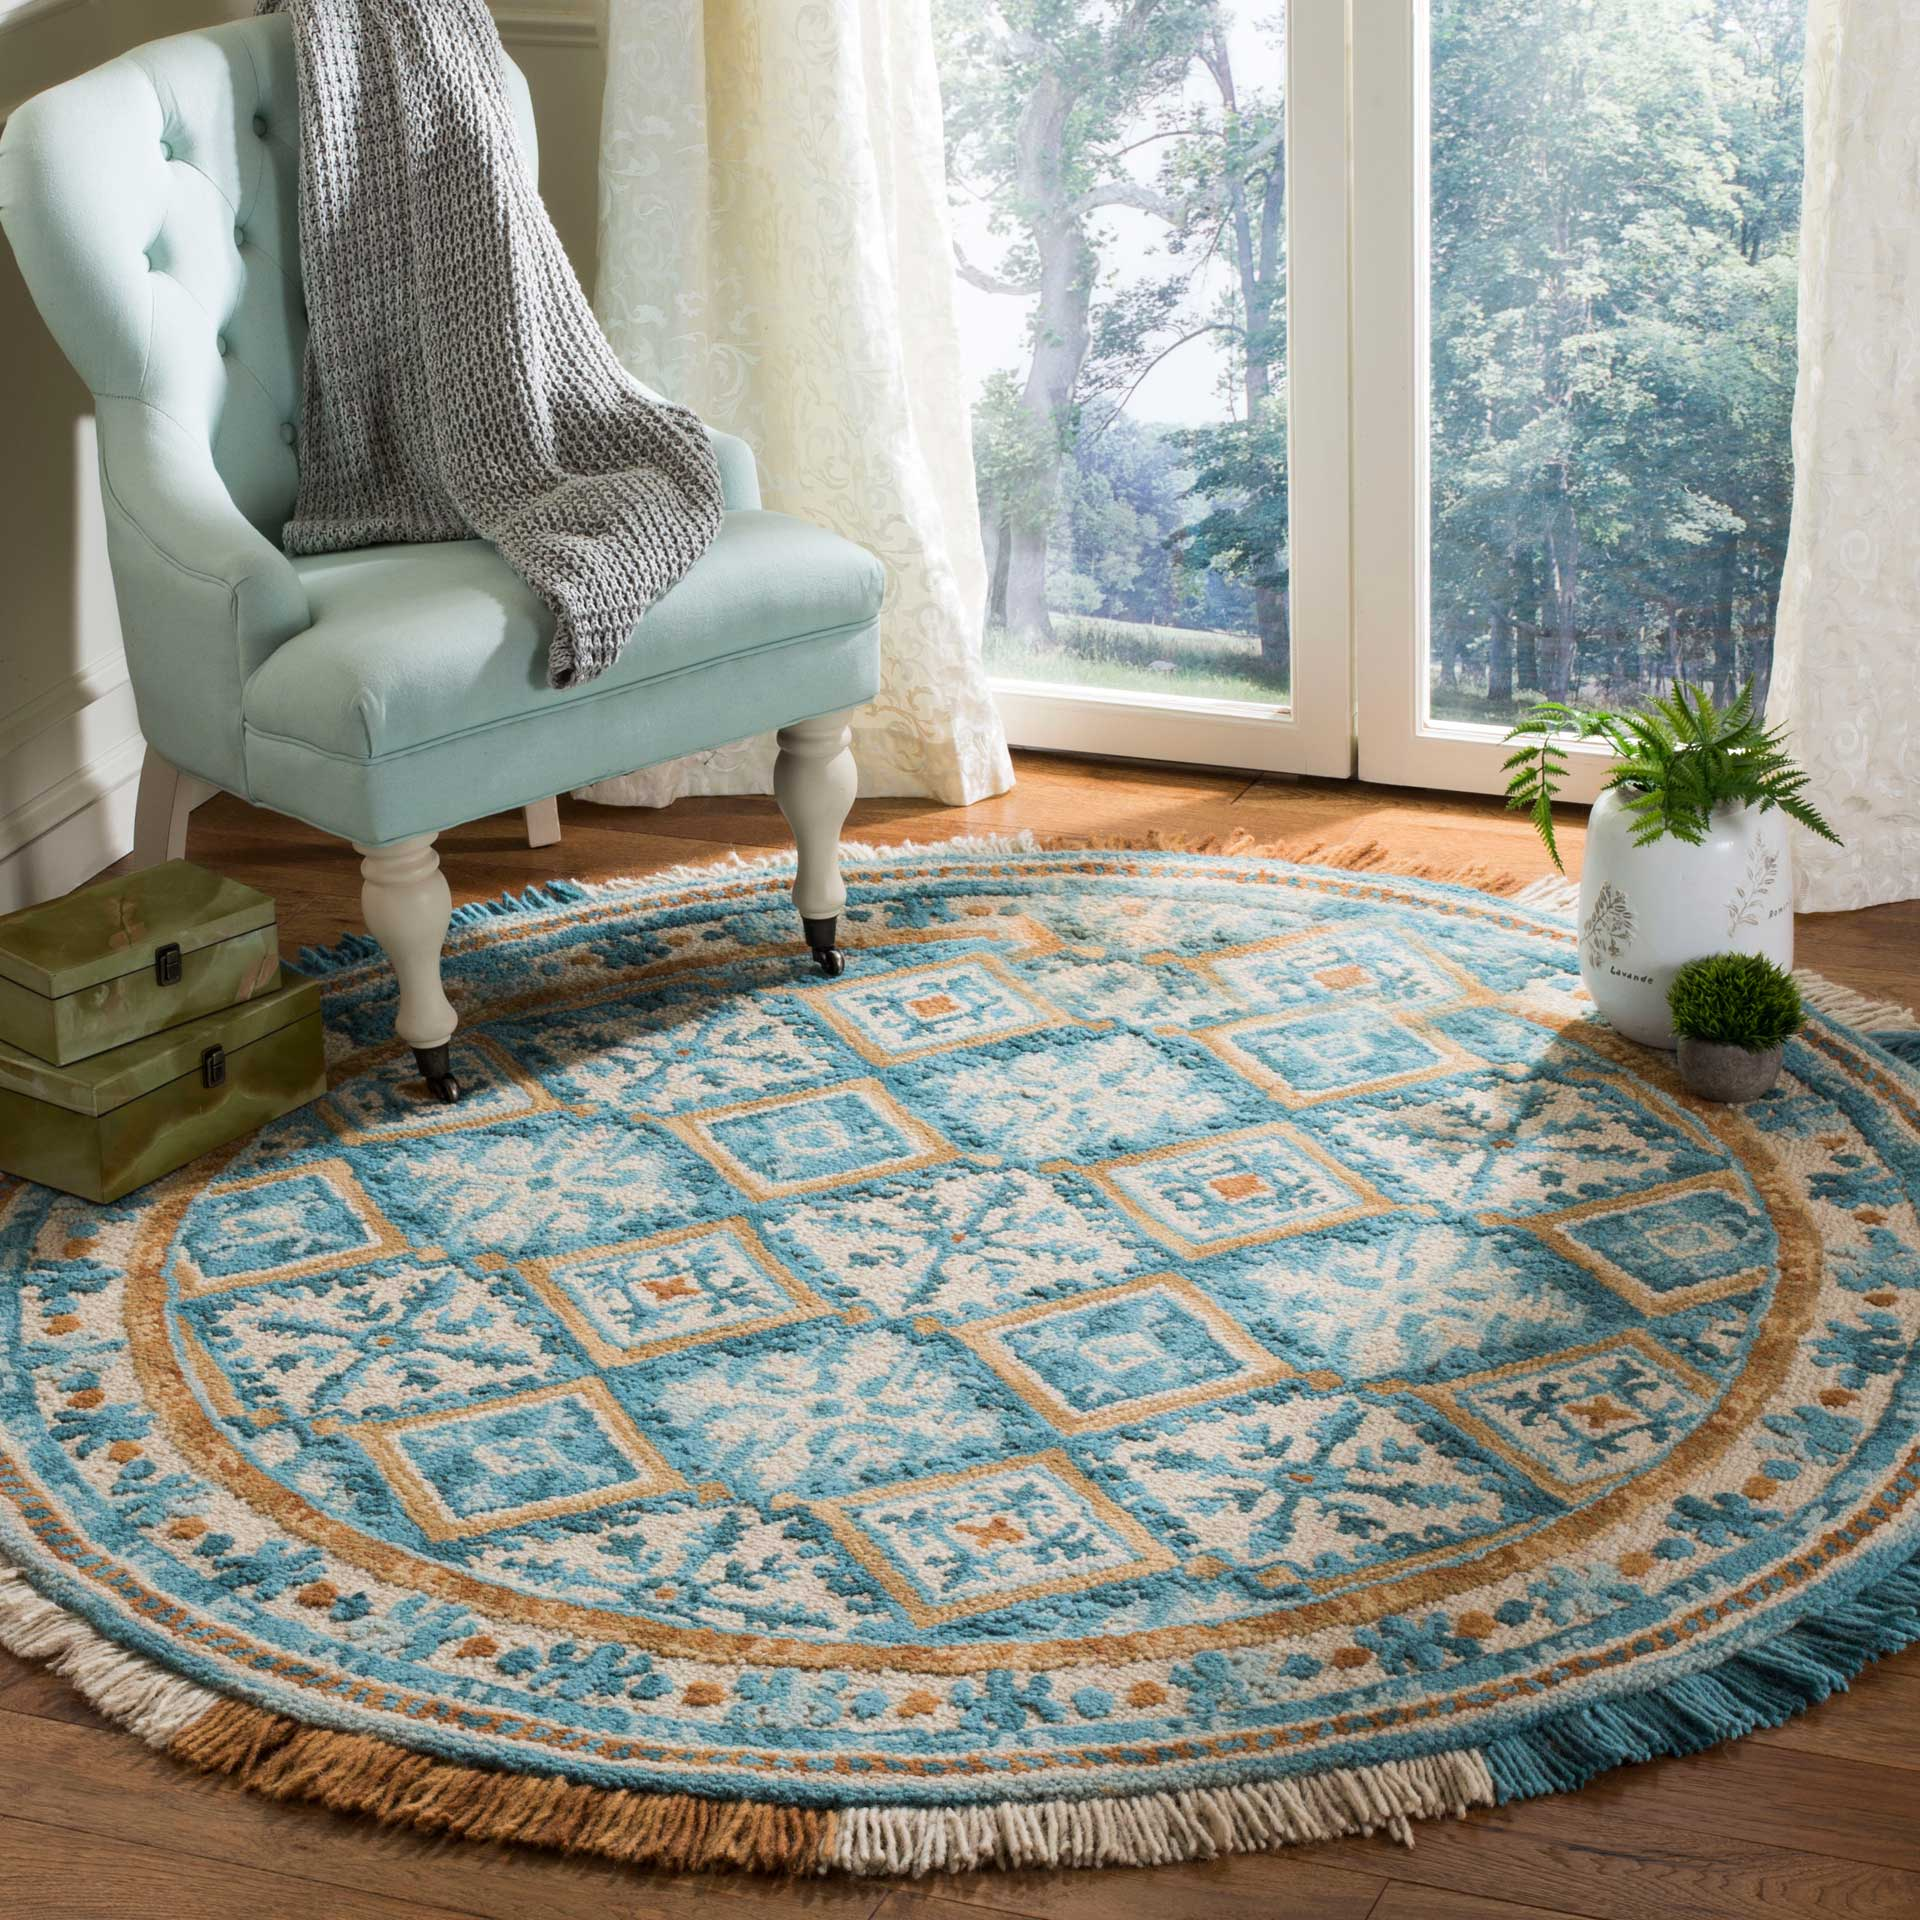 Blossom Ivory/Teal Round Rug